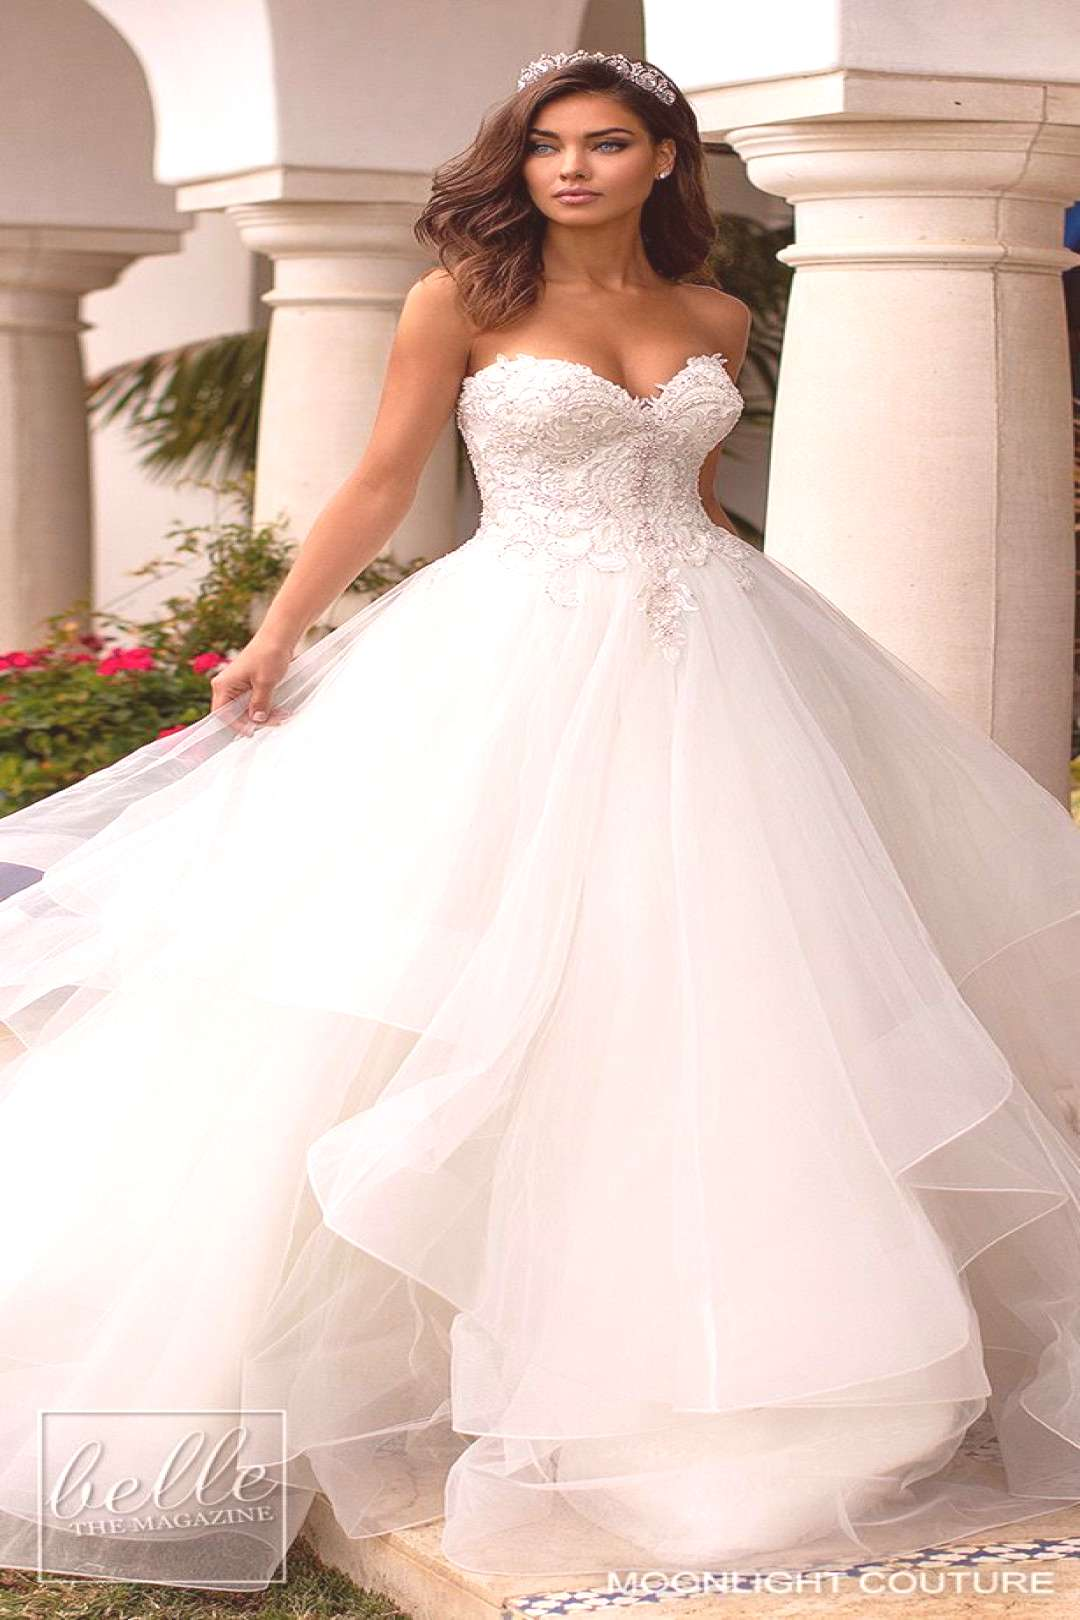 Moonlight Couture Bridal Dresses Autumn 2019 - Check more at s3.diydecors.onli .... - Moonlight Co